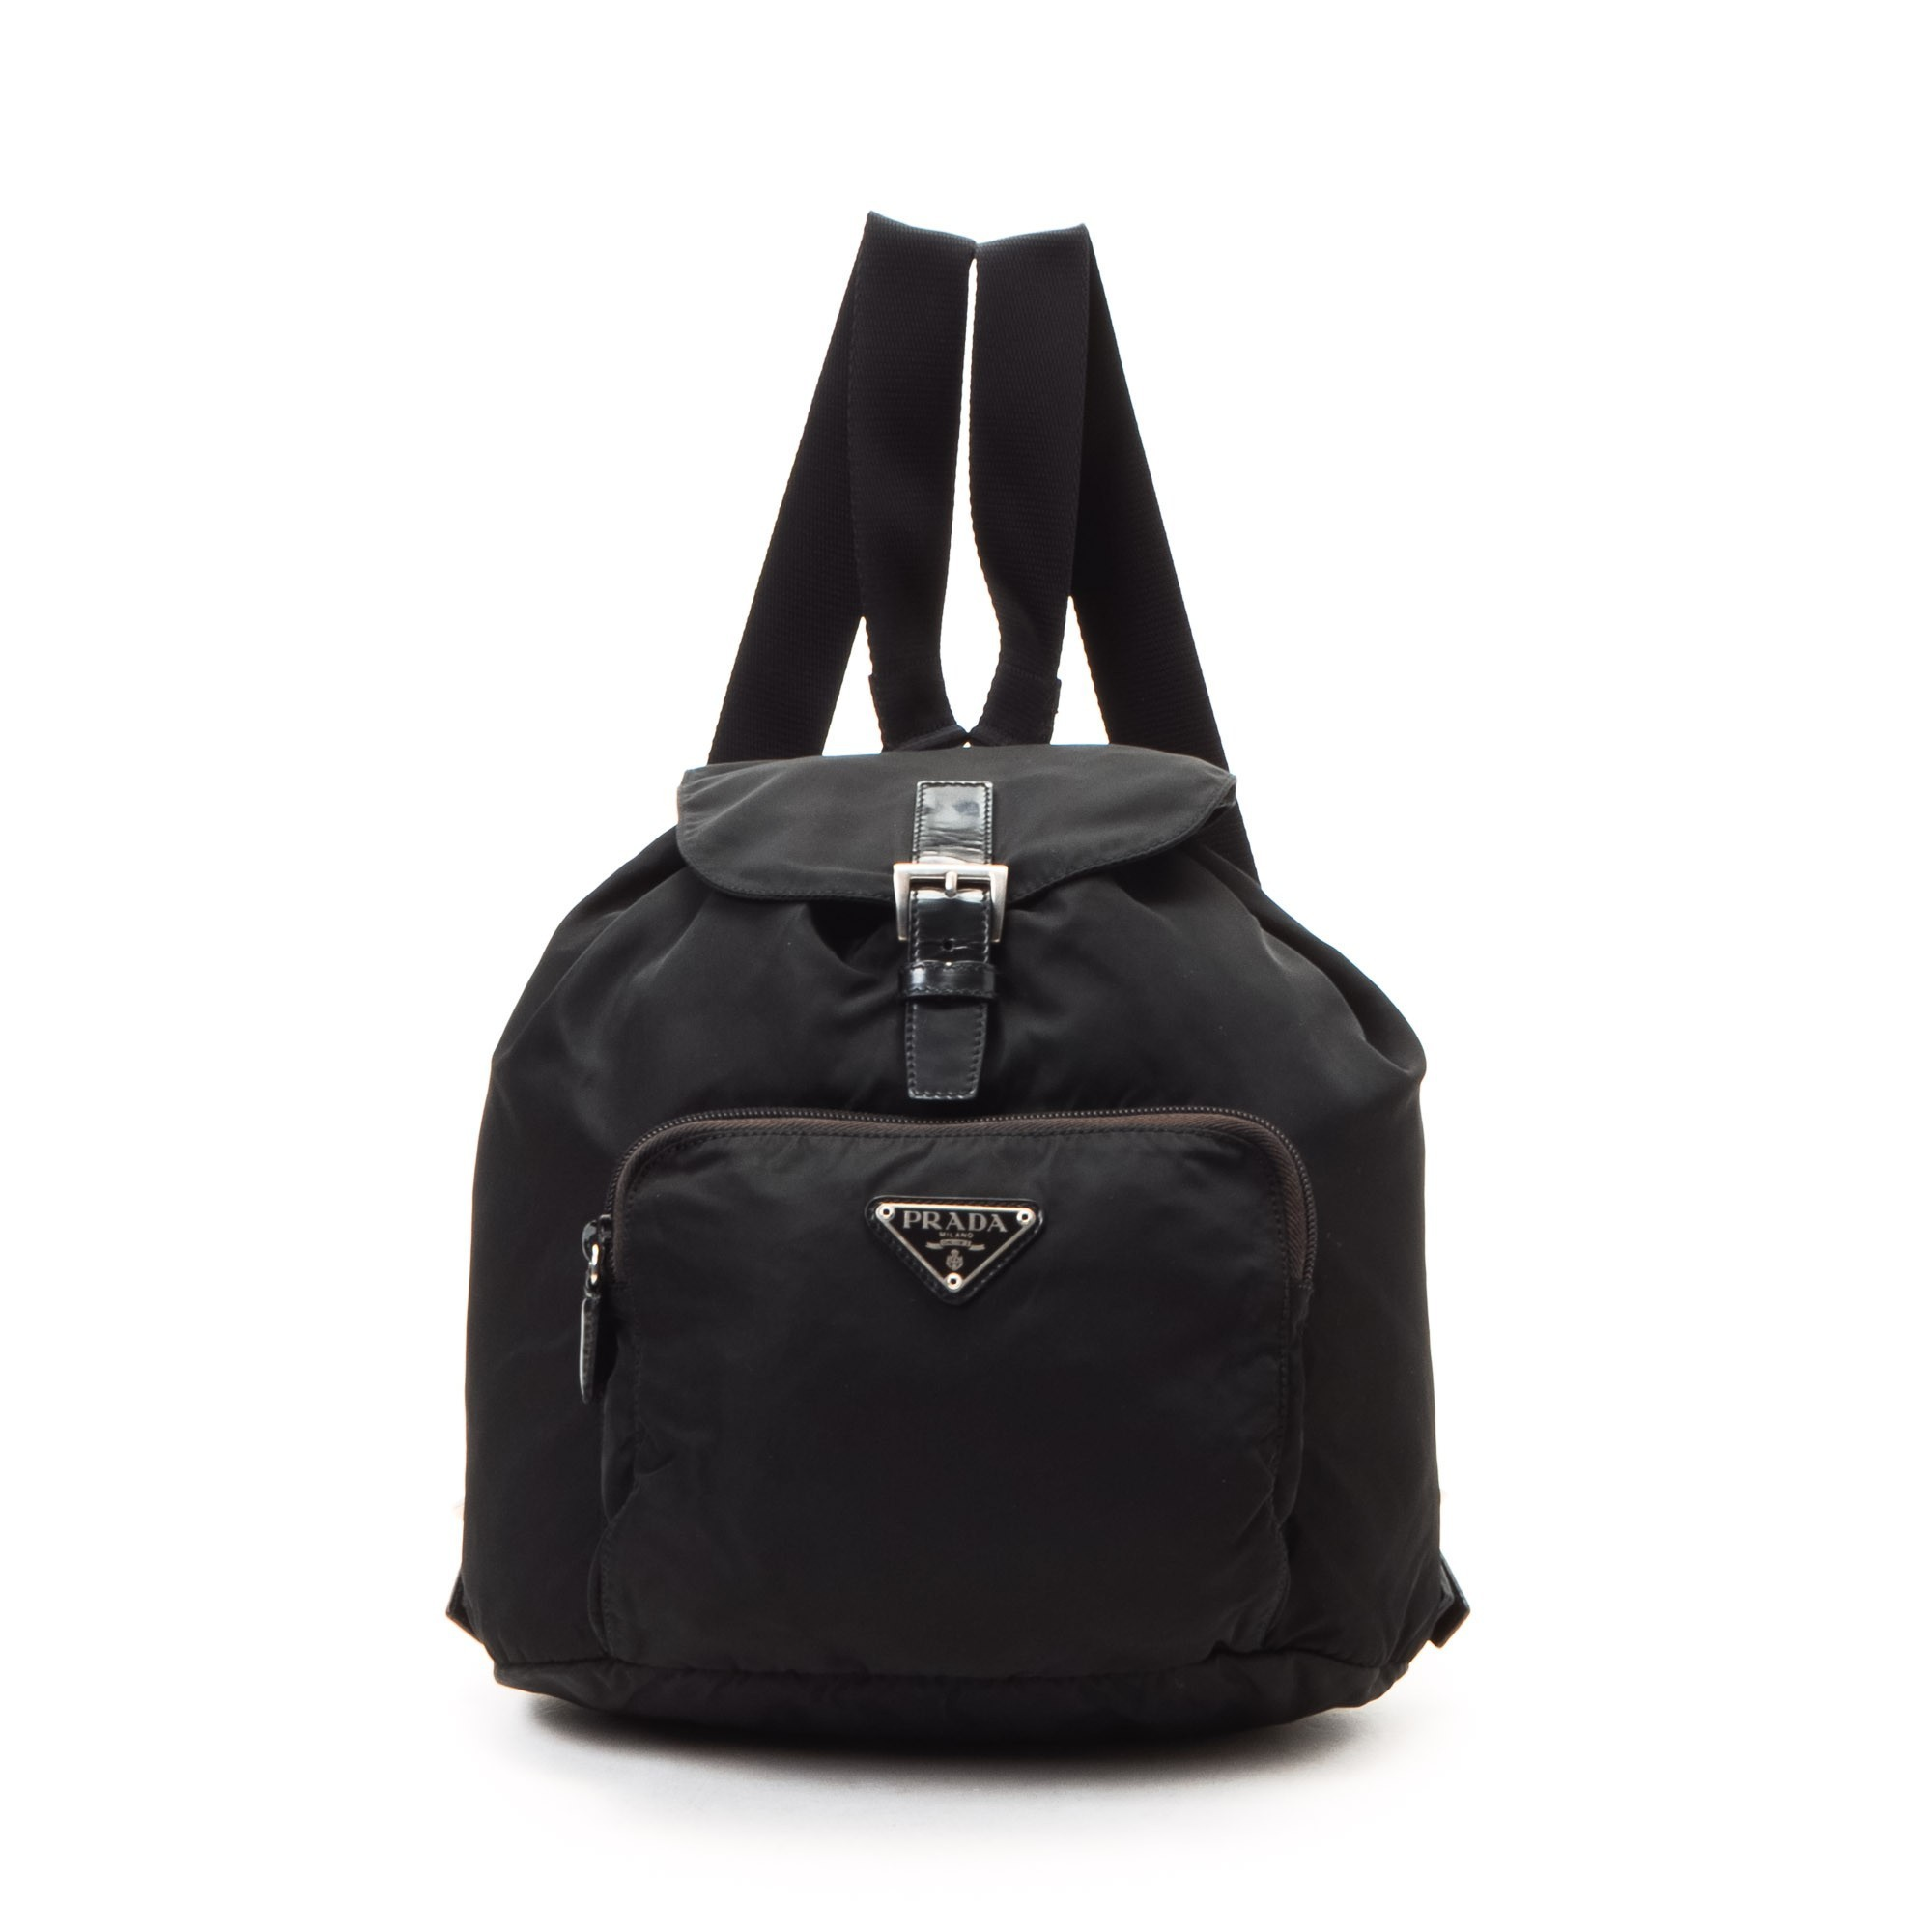 best choice purses - Prada Tessuto Backpack Black Nylon Travel Bag - LXR\u0026amp;CO Vintage Luxury